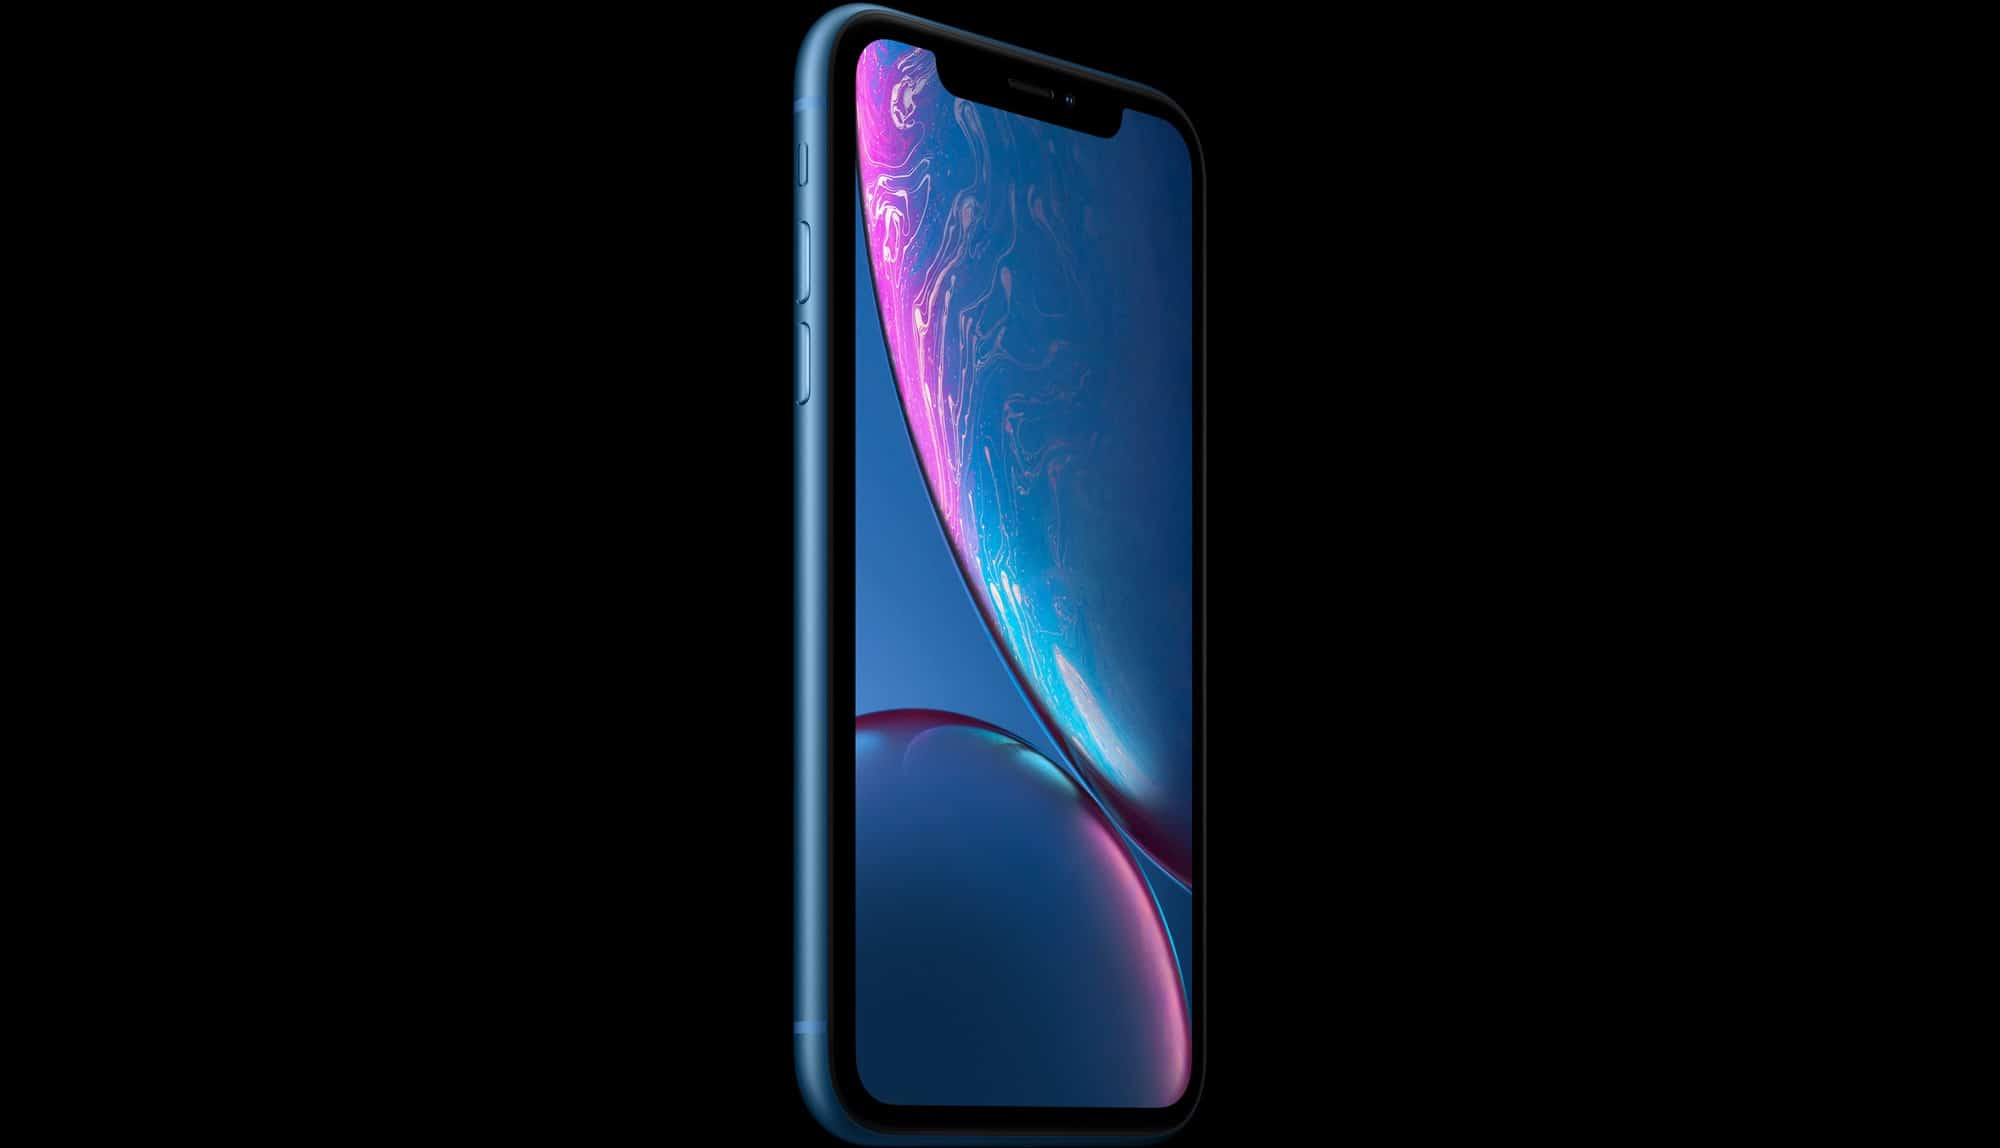 The iPhone XR will feature Haptic Touch. But just what is that?